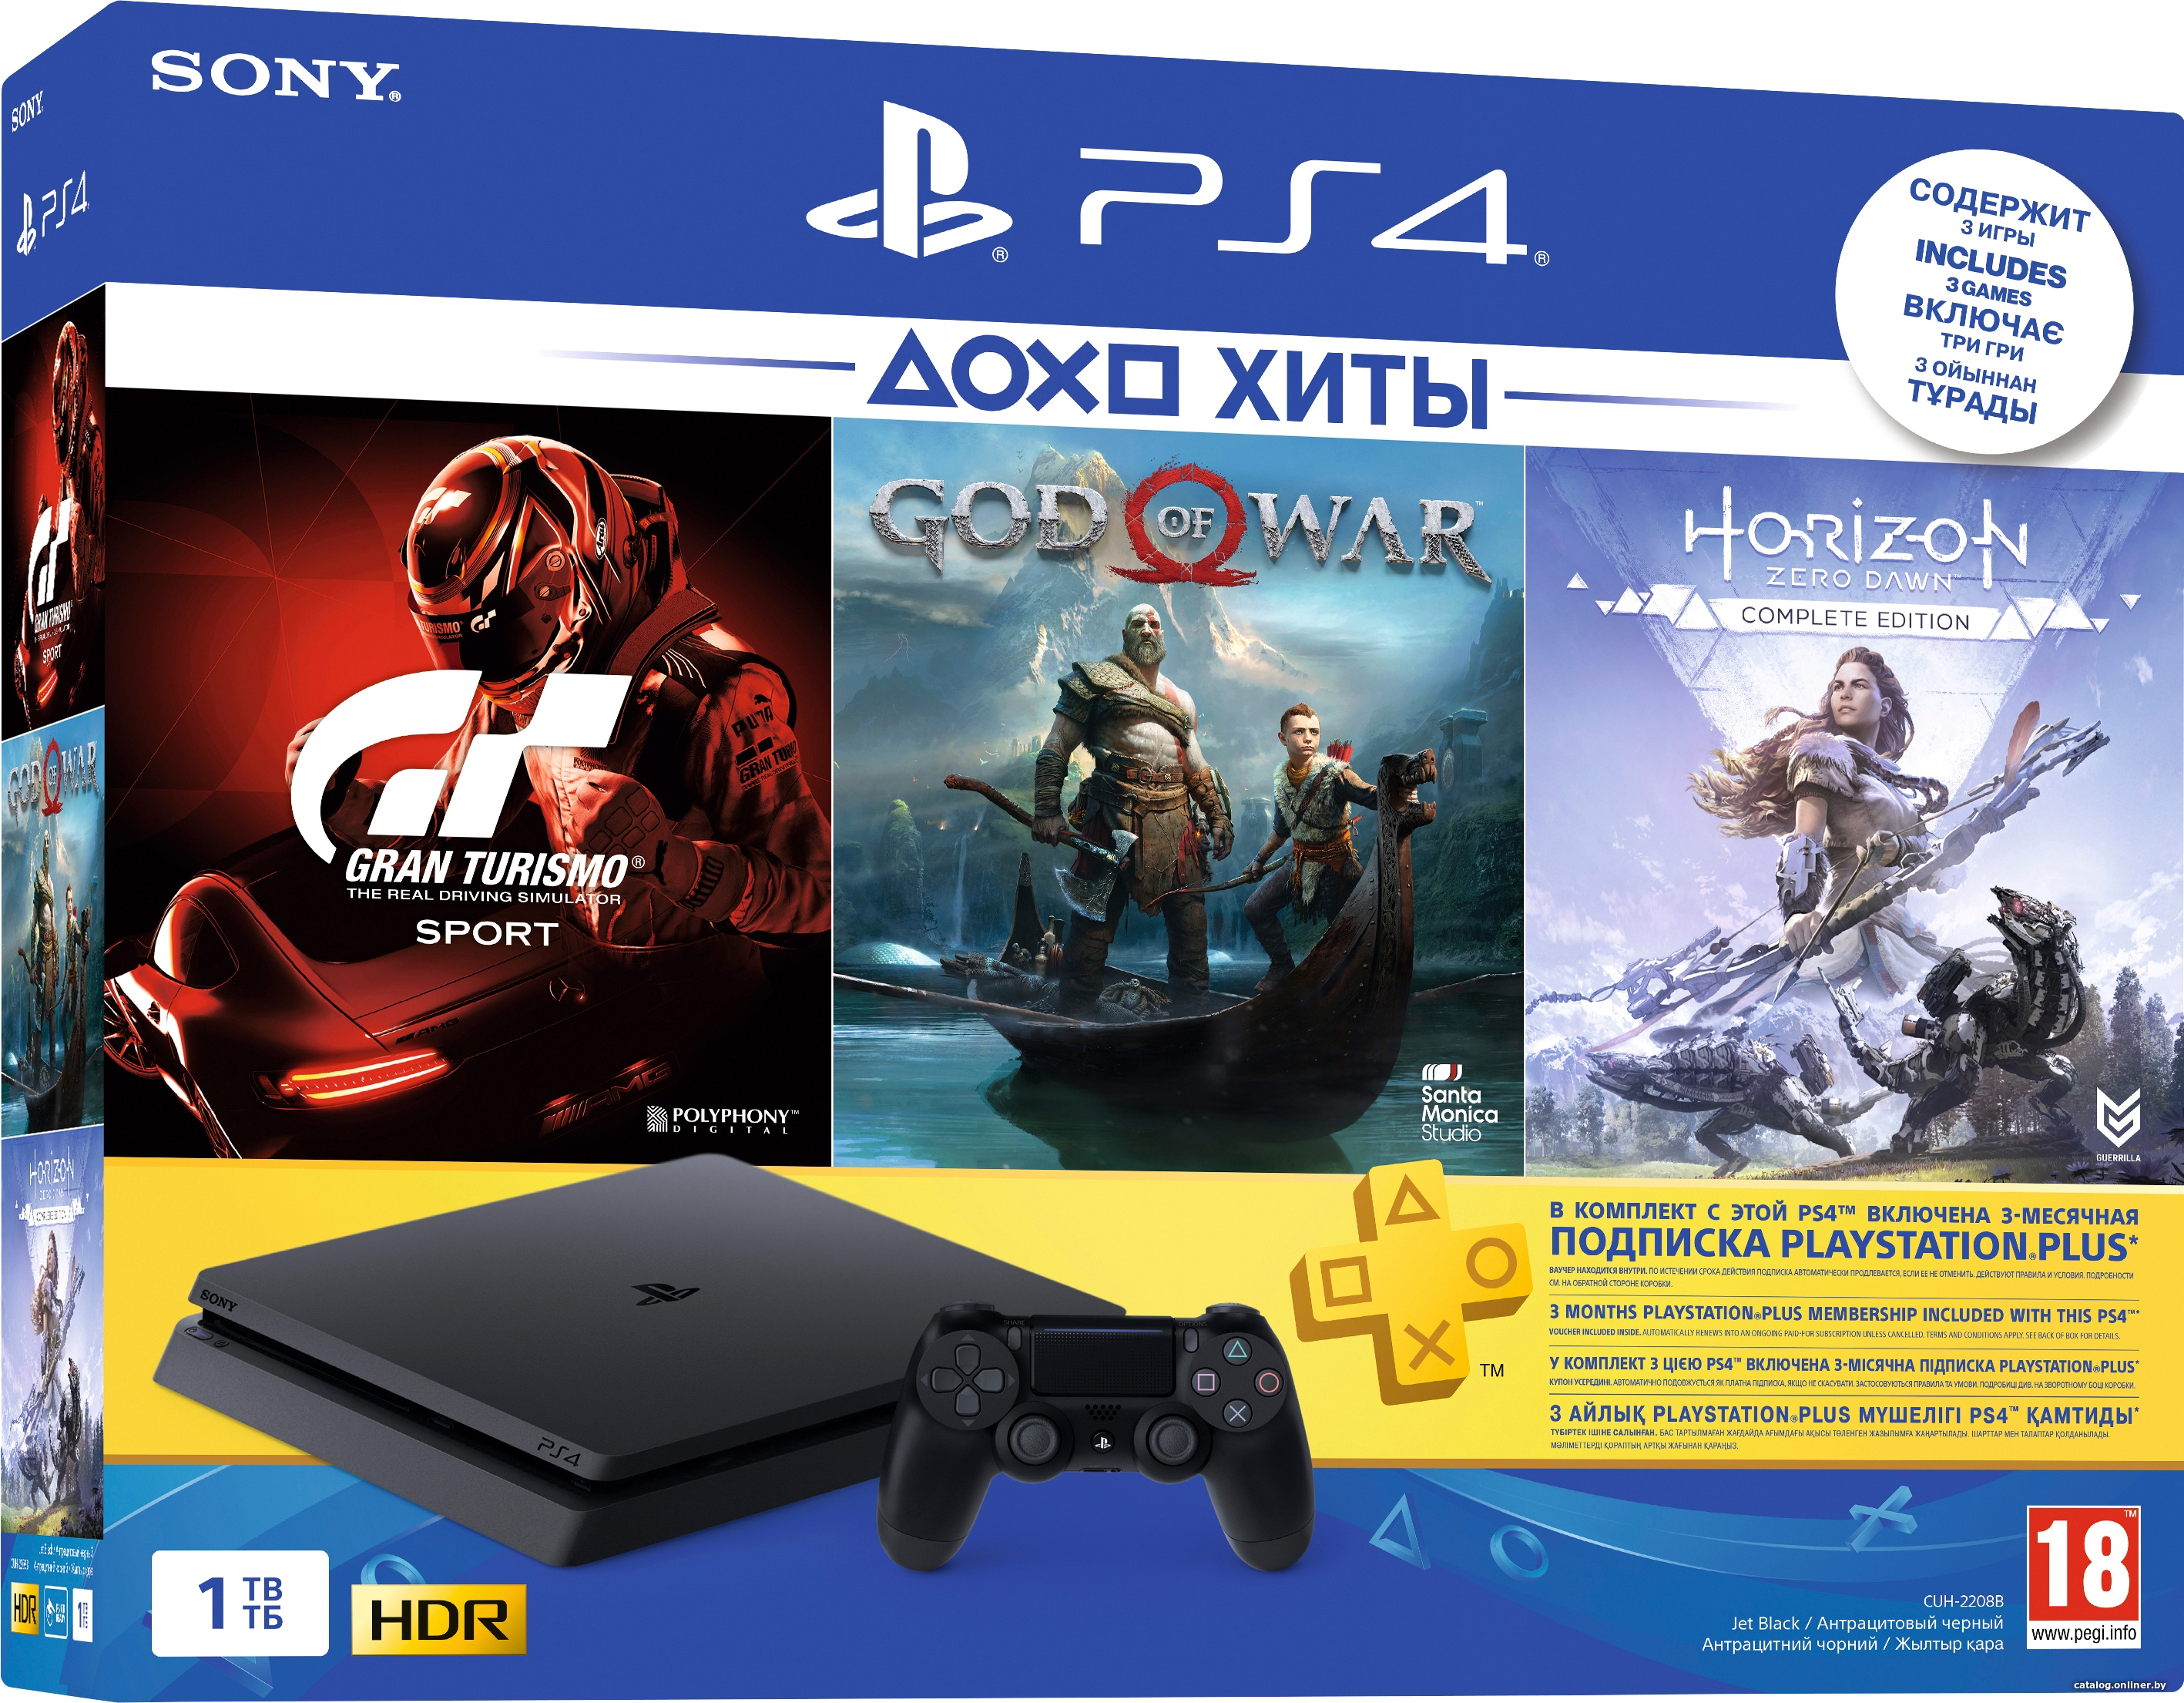 SONY PS4 slim 1TB + GT Sport + God of War 4 + Horizon Zero Dawn + PS PLUS (3 месяца) от магазина Games of World